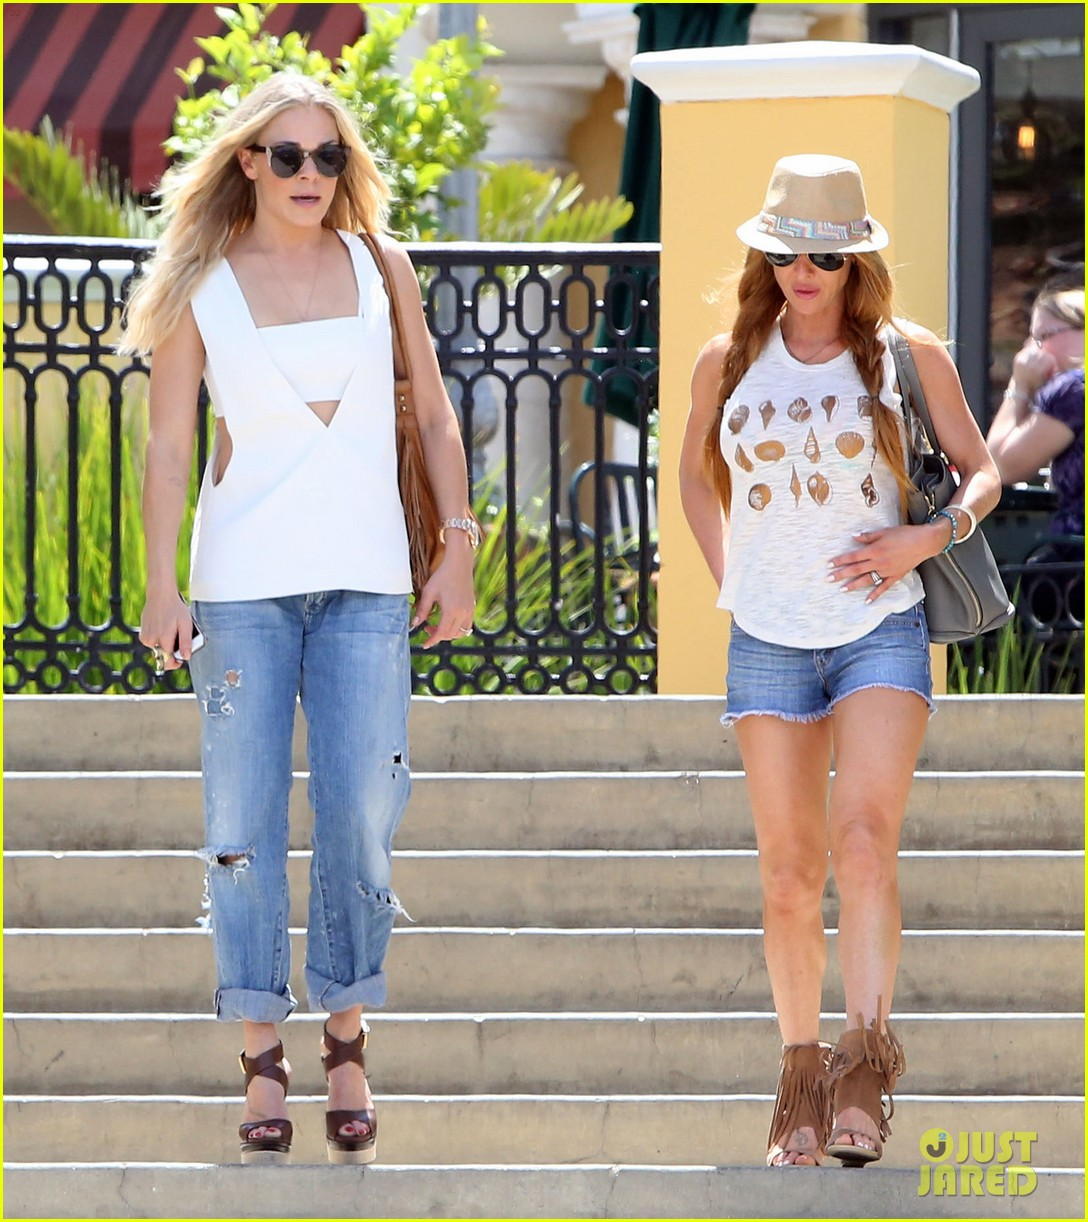 leann rimes shows some skin in cut out tank top 103103797